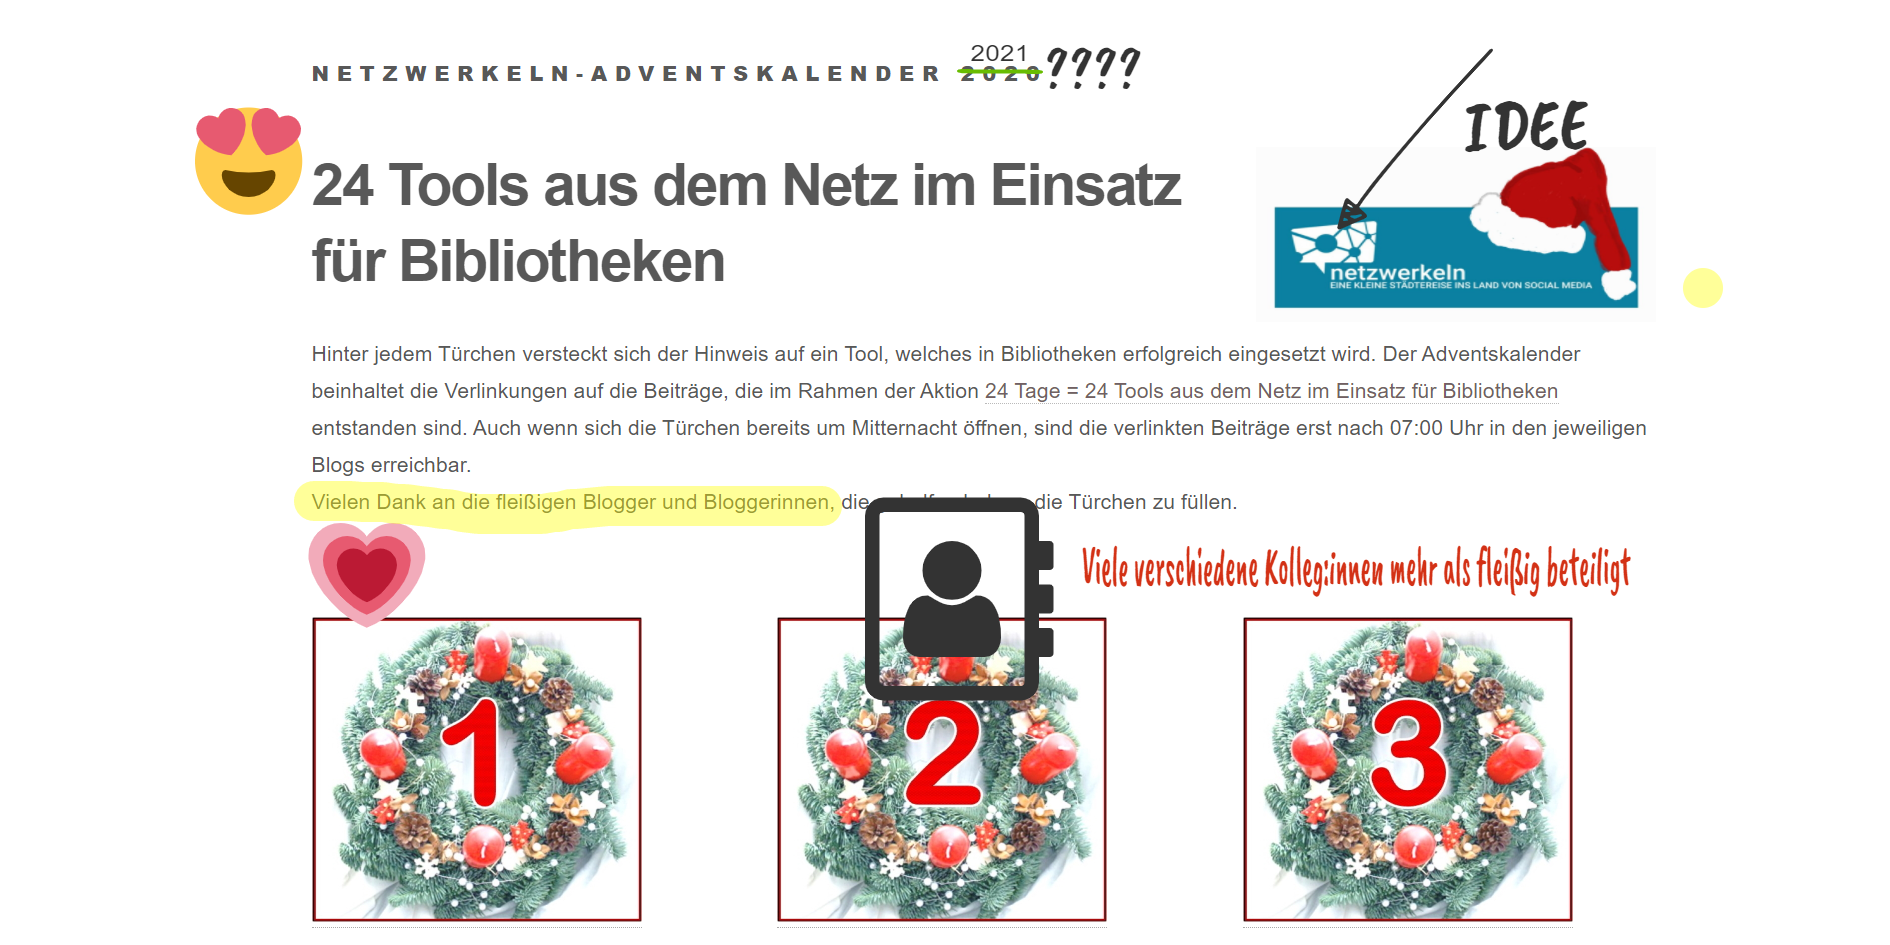 Annotierter Screenshot des Adventskalenders mit Copy&Paste-Design